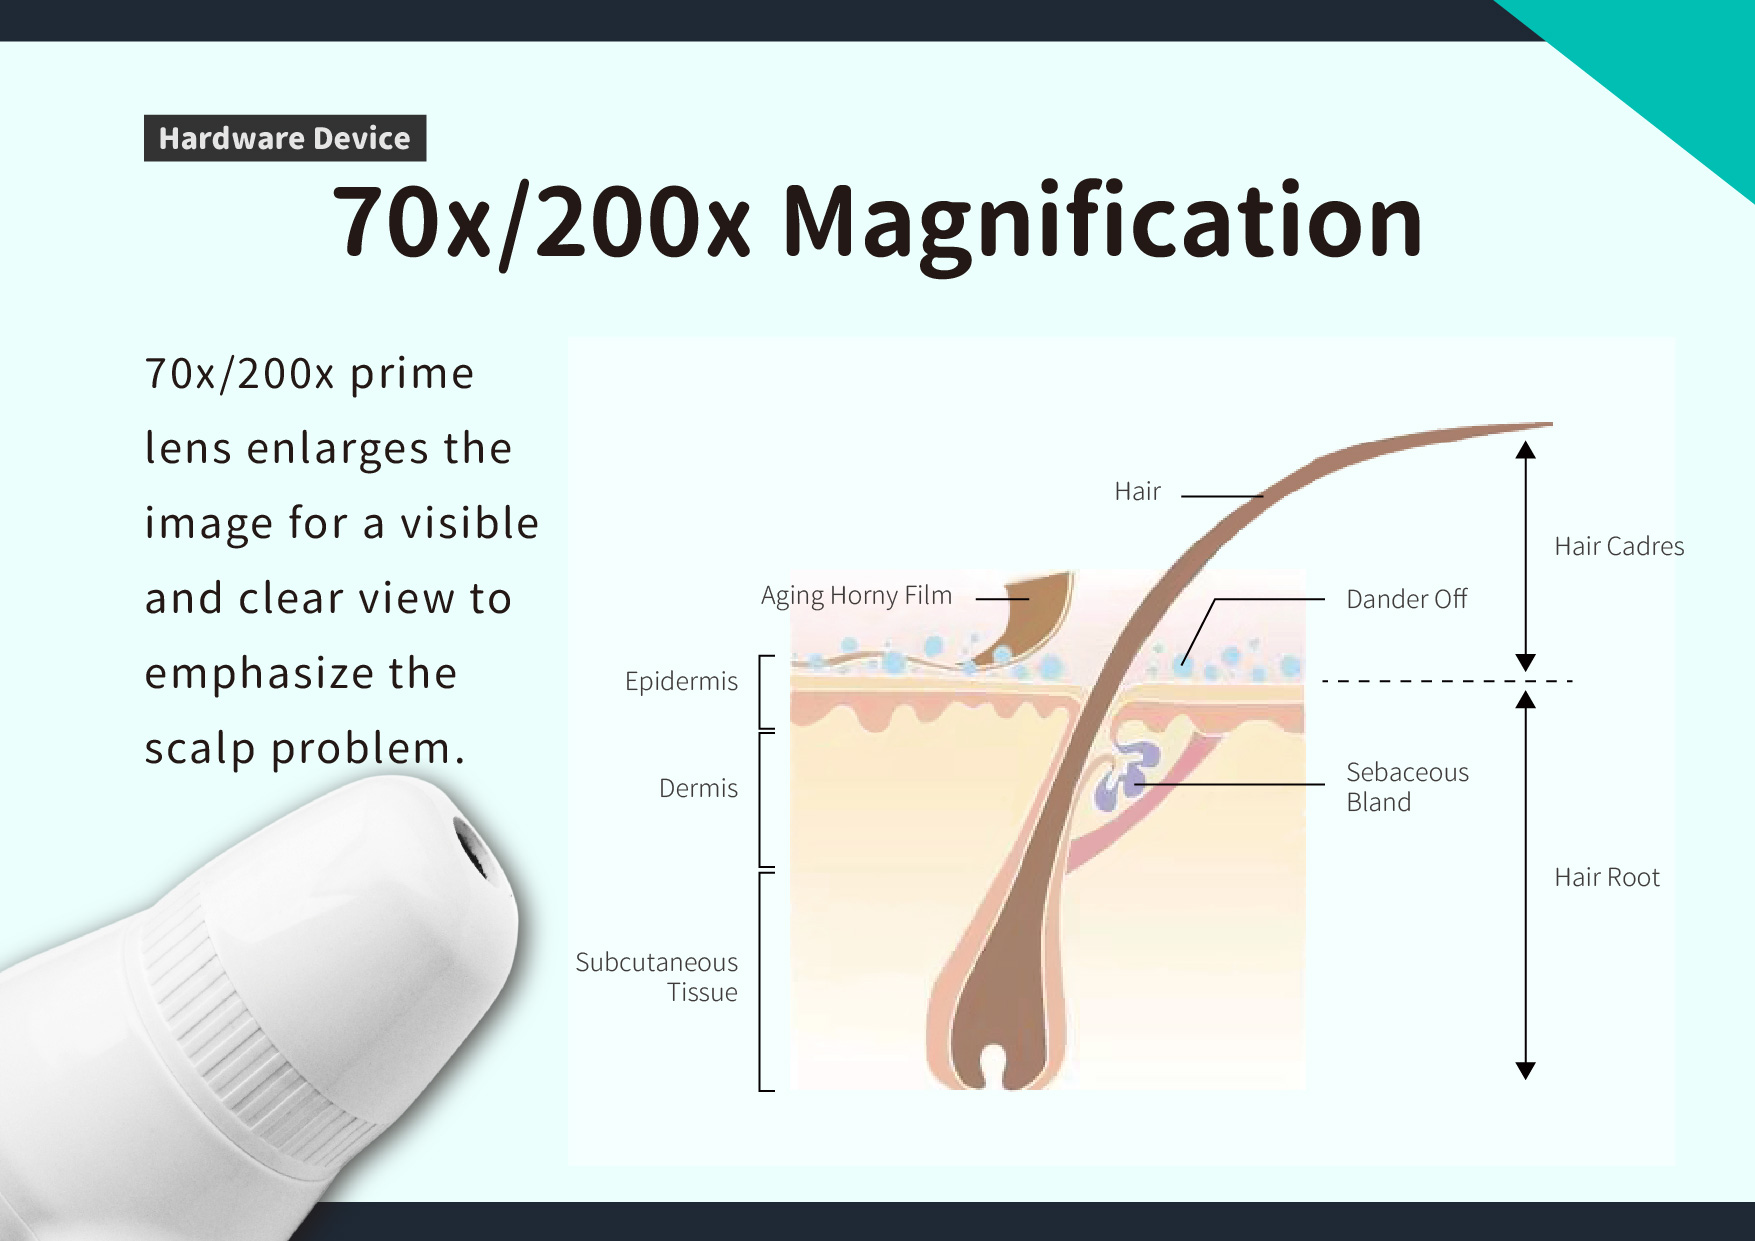 70x/200x Magnification: 70x/200x prime lens enlarges the image for a visible and clear view to emphasize the scalp problem.